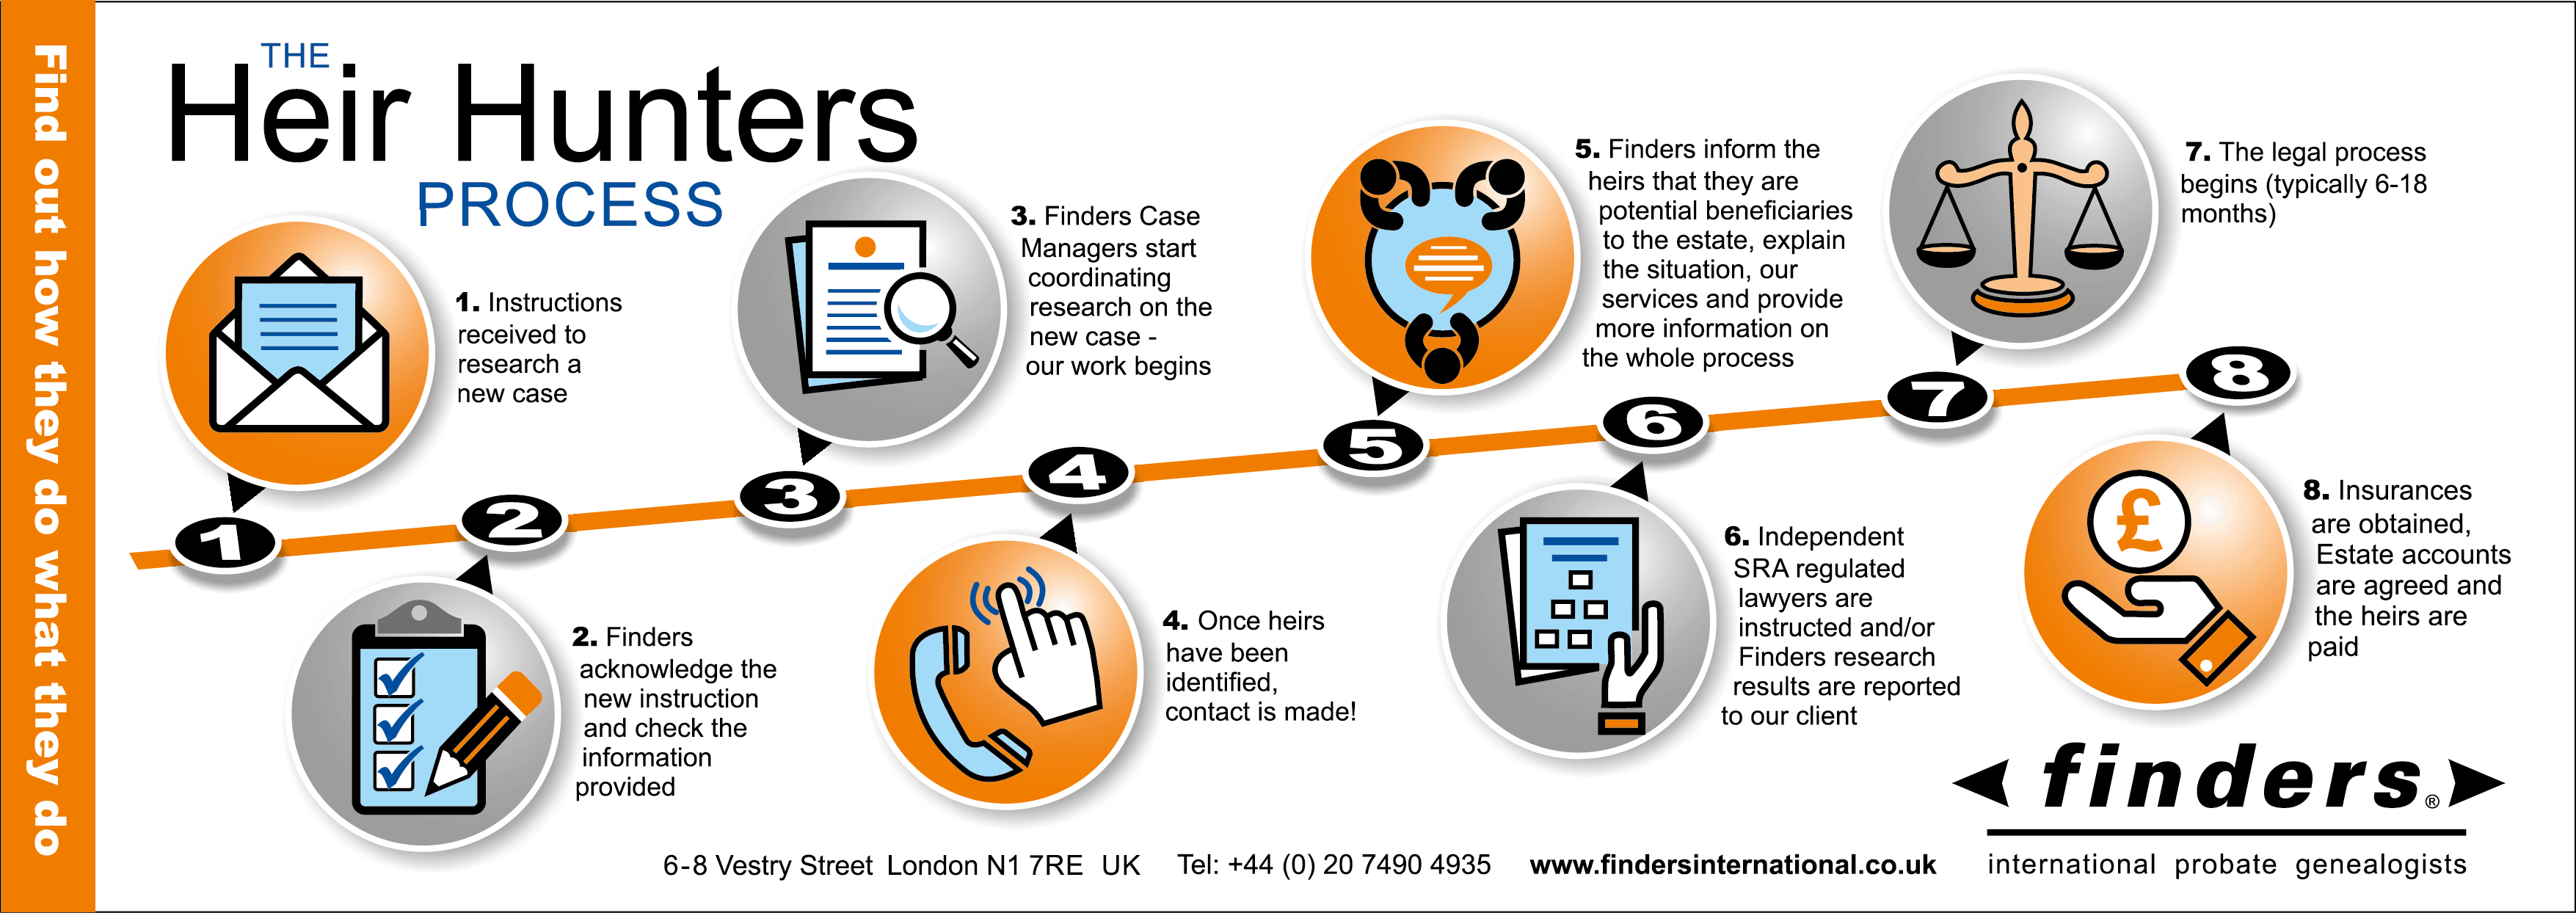 Finders-The HeirHunters Process infographic